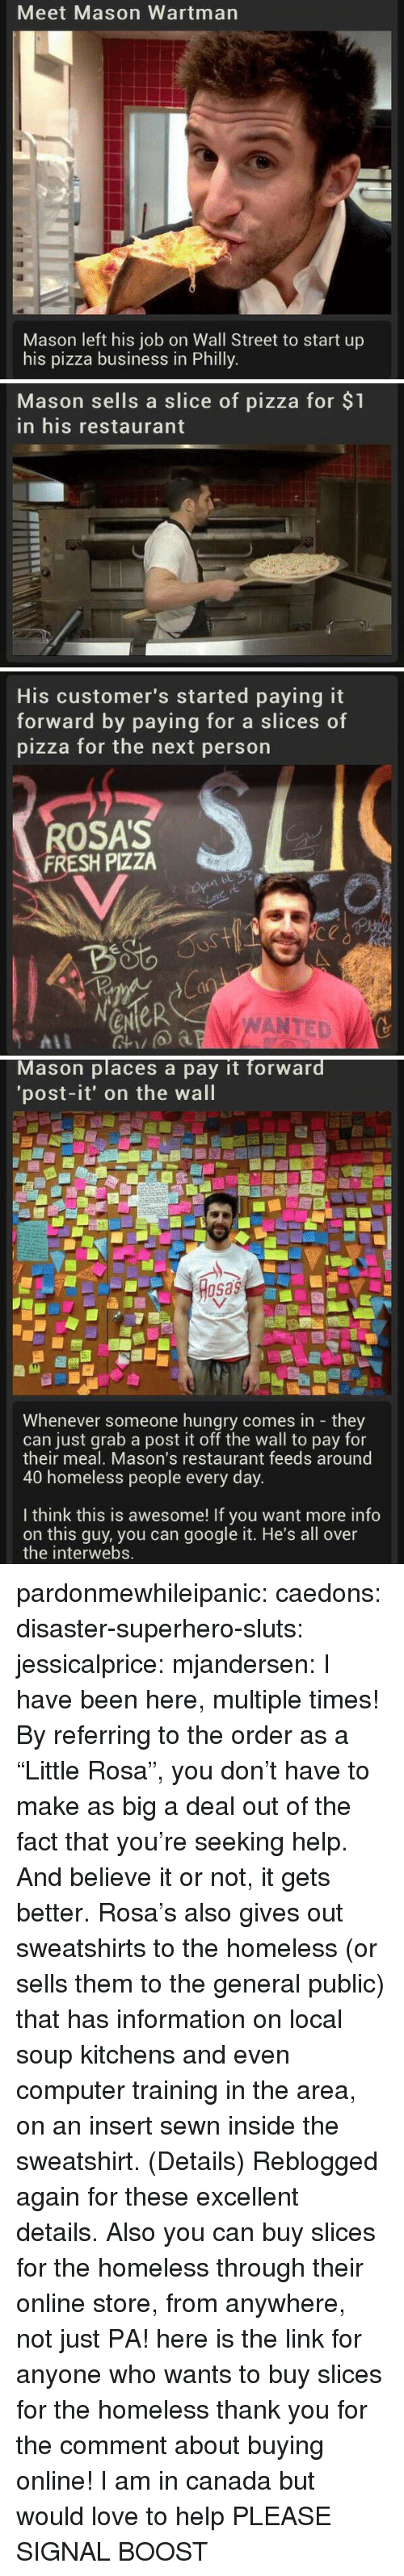 "Rosas: Meet Mason Wartman  Mason left his job on Wall Street to start up  his pizza business in Philly   Mason sells a slice of pizza for $1  in his restaurant   His customer's started paying it  forward by paying for a slice  pizza for the next person  s of  ROSA'S  FRESH PIZZA  4o  a0  eNeR  WANTED   Mason places a pay it forward  'post-it' on the wall  osas  Whenever someone hungry comes in they  can just grab a post it off the wall to pay for  their meal, Mason's restaurant feeds around  40 homeless people every day  I think this is awesome! If you want more info  on this guy, you can google it. He's all over  the interwebs. pardonmewhileipanic: caedons:  disaster-superhero-sluts:  jessicalprice:  mjandersen:  I have been here, multiple times!   By referring to the order as a ""Little Rosa"", you don't have to make as big a deal out of the fact that you're seeking help. And believe it or not, it gets better. Rosa's also gives out sweatshirts to the homeless (or sells them to the general public) that has information on local soup kitchens and even computer training in the area, on an insert sewn inside the sweatshirt. (Details)  Reblogged again for these excellent details.  Also you can buy slices for the homeless through their online store, from anywhere, not just PA!  here is the link for anyone who wants to buy slices for the homeless  thank you for the comment about buying online! I am in canada but would love to help PLEASE SIGNAL BOOST"